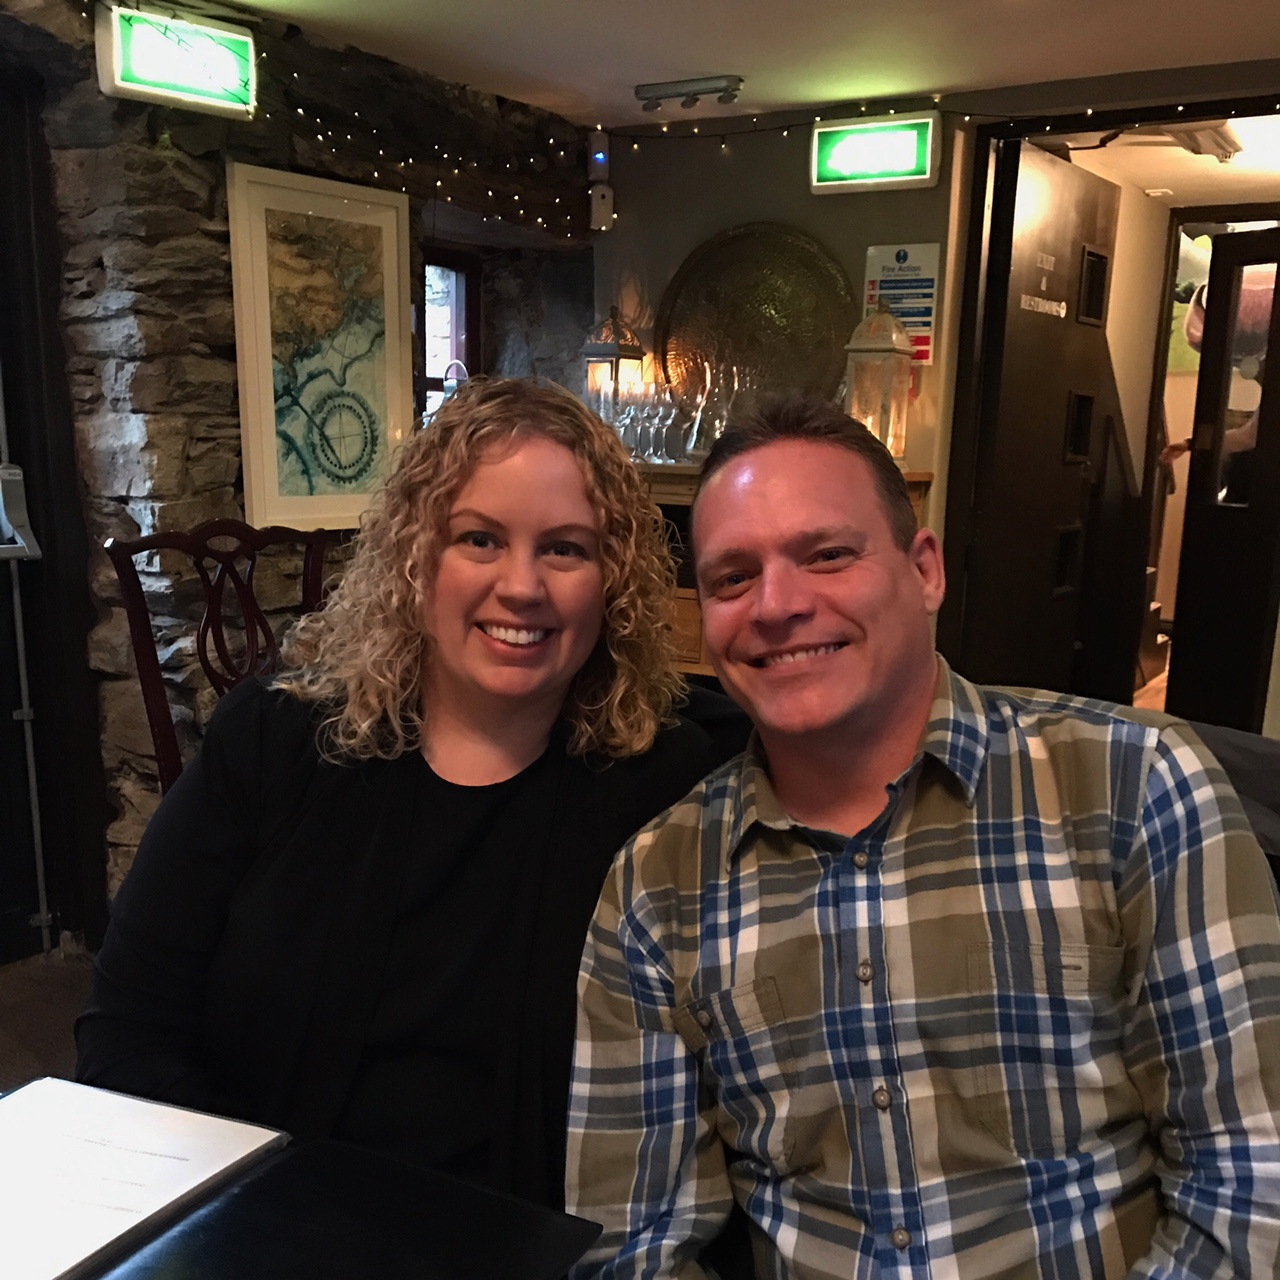 Out to dinner in Ireland